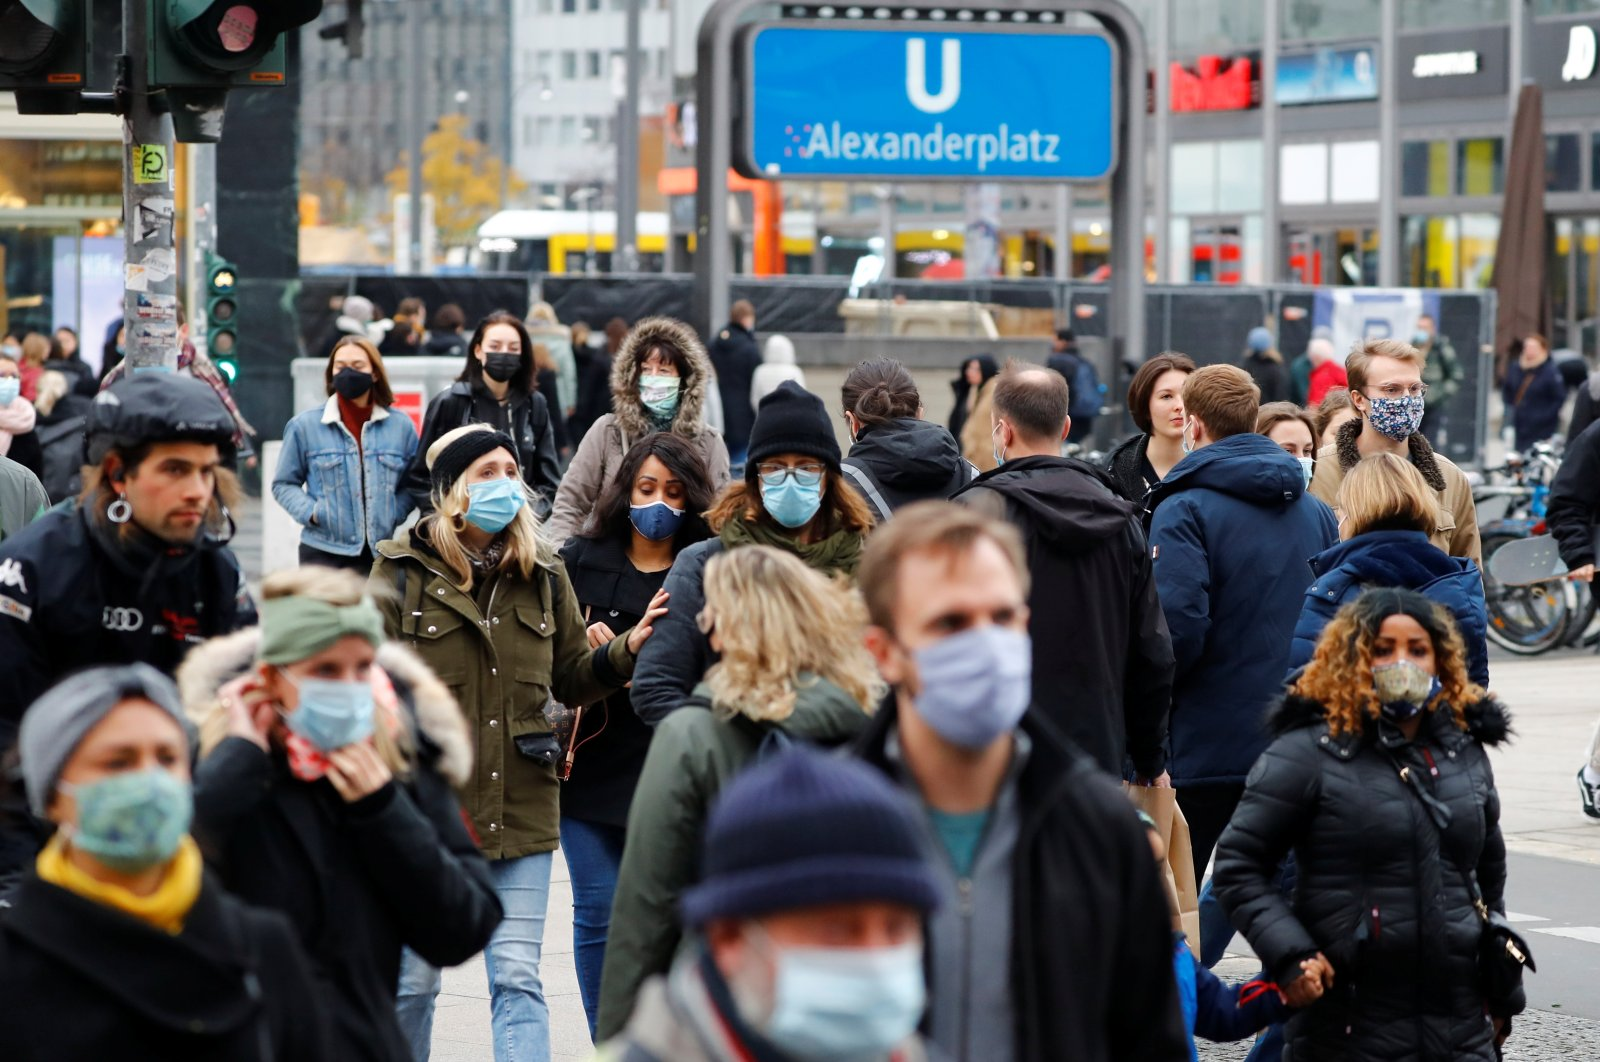 People wear protective masks as they walk in the Alexanderplatz shopping area amid the coronavirus outbreak in Berlin, Germany, Nov. 21, 2020. (Reuters Photo)